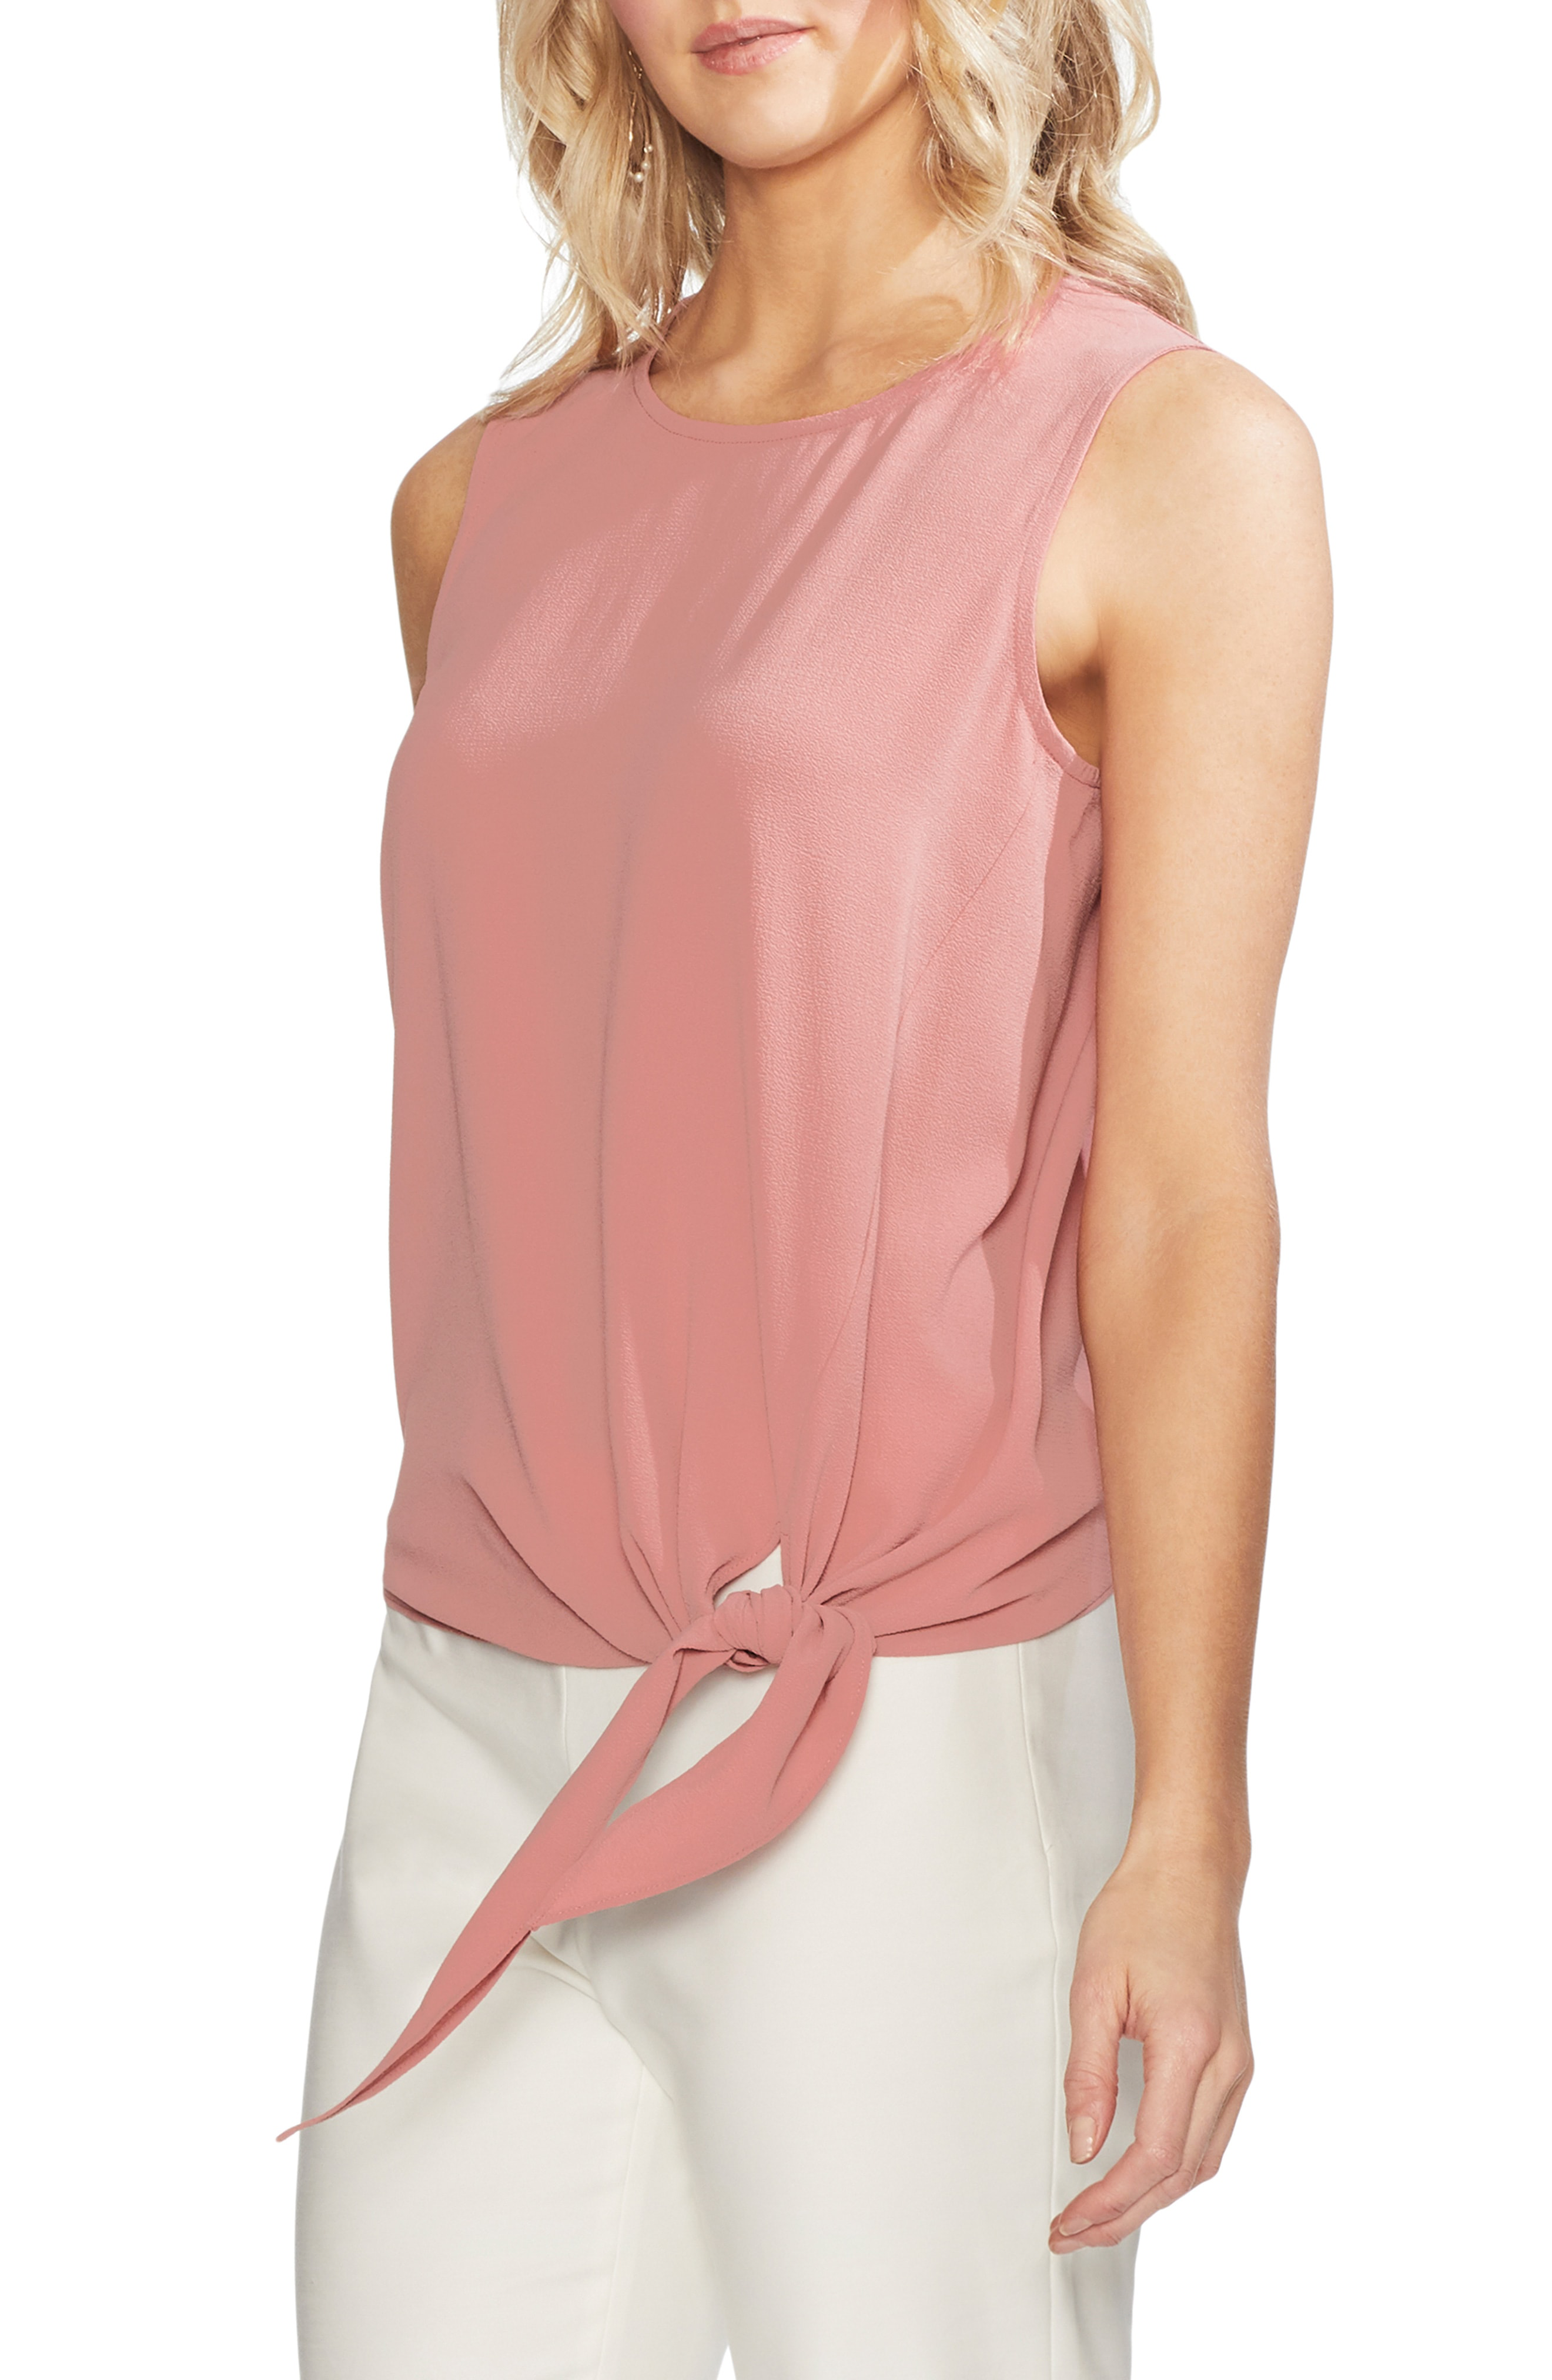 aec93aadb3e5 Style Name  Vince Camuto Sleeveless Tie Front Blouse. Style Number  5774103.